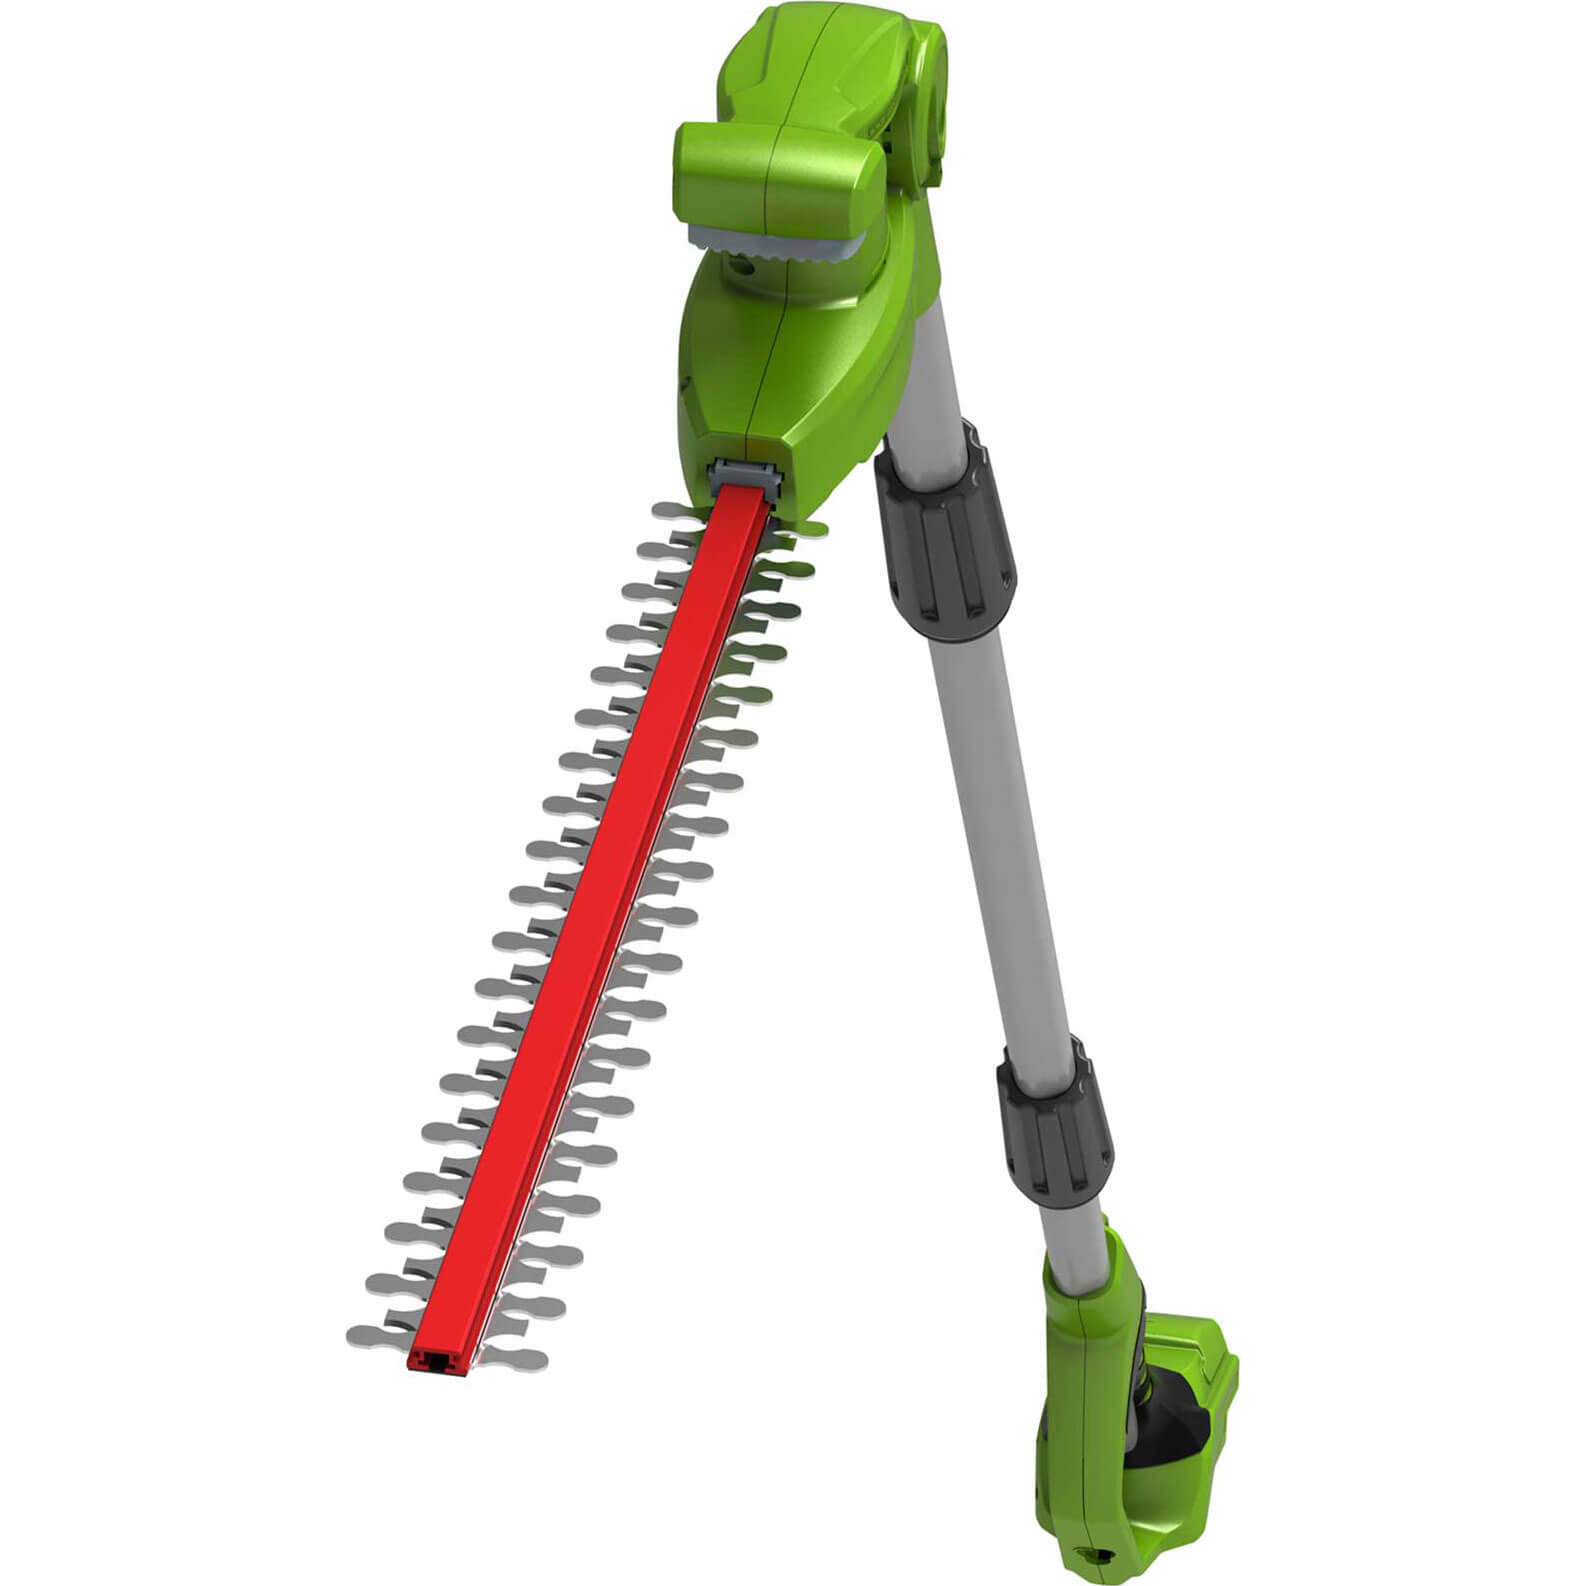 Greenworks G24LRHT 24v Cordless Long Reach Hedge Trimmer 510mm No Batteries No Charger